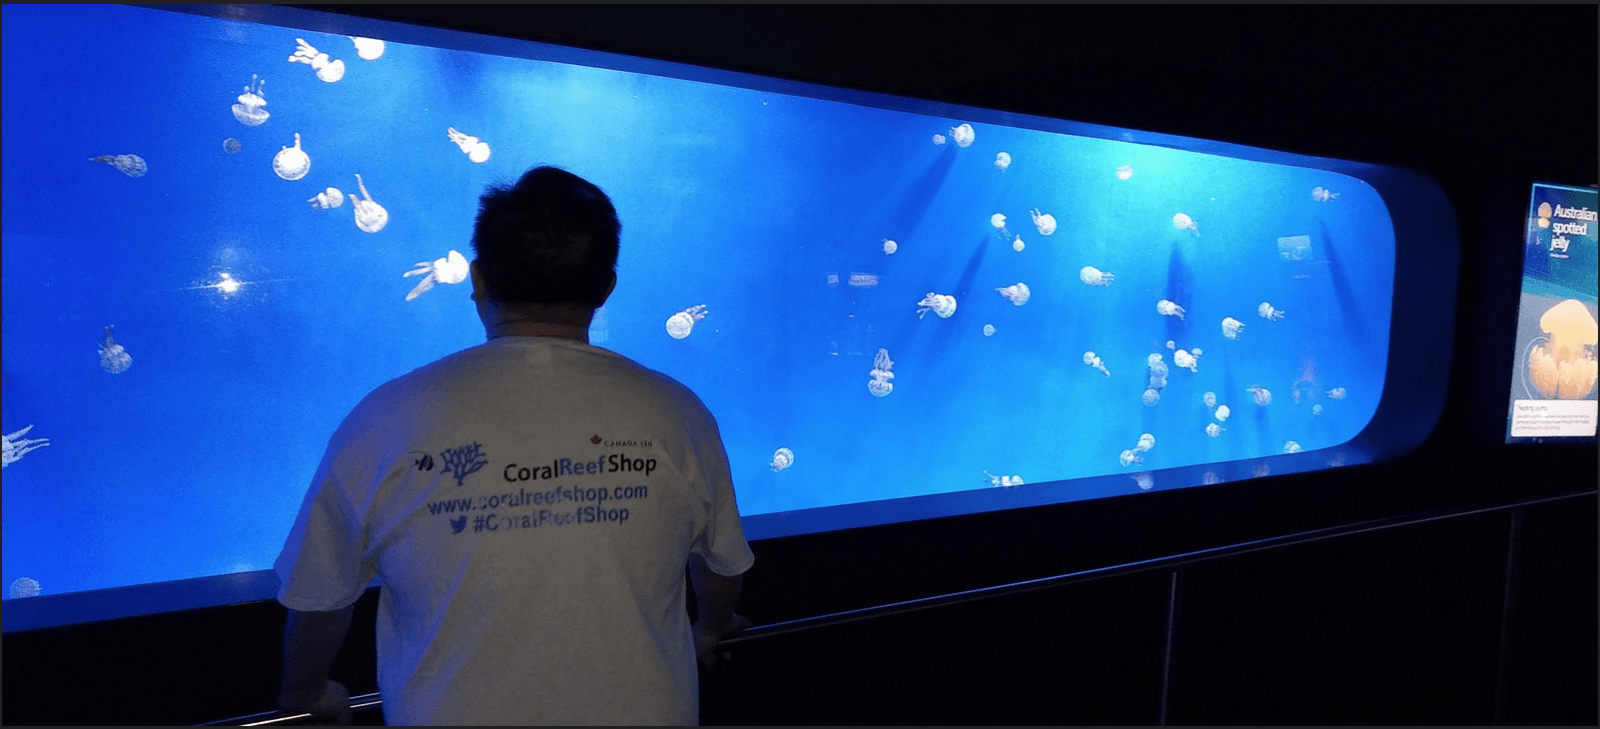 jellyfish-public-aquarium-coral-reef-shop